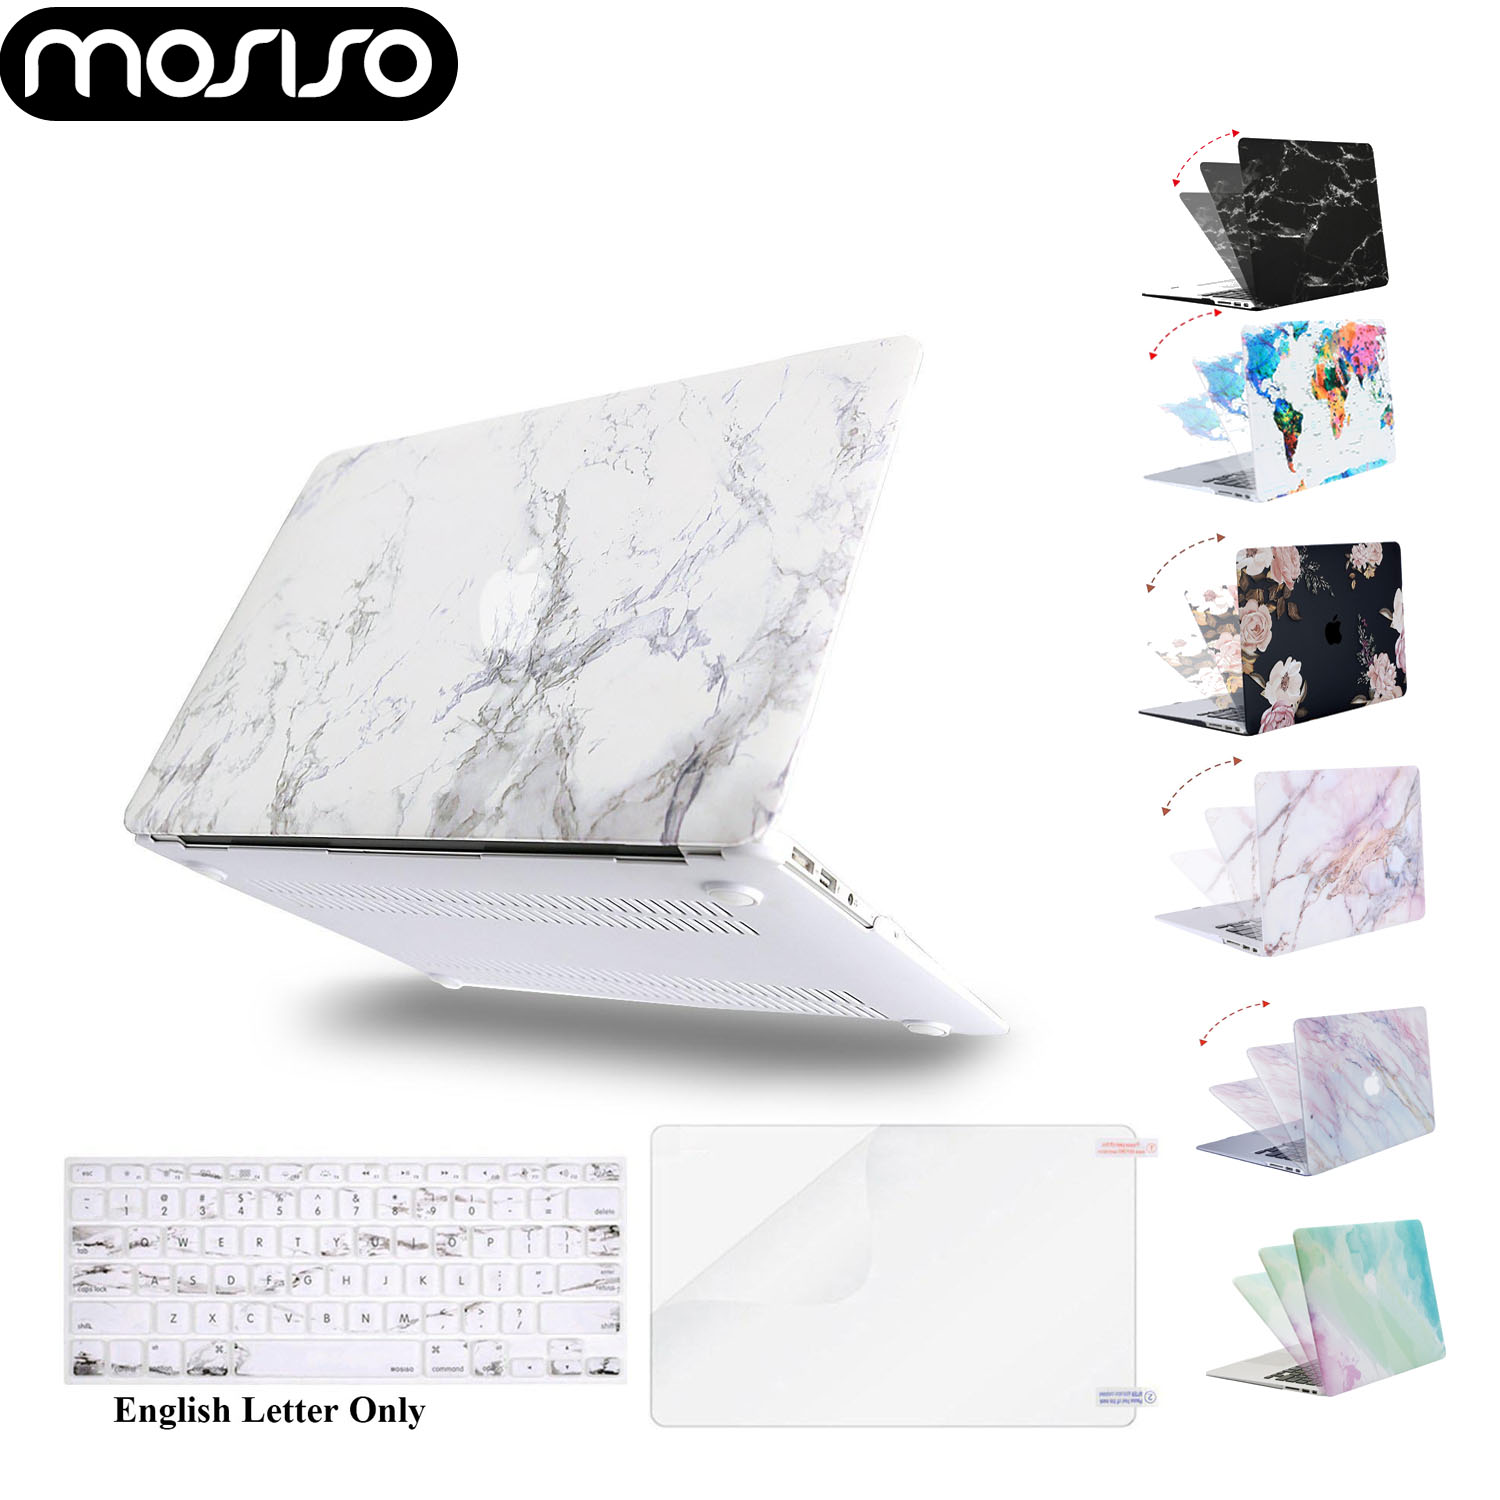 MOSISO Hard <font><b>Cover</b></font> Case for Laptop <font><b>Macbook</b></font> <font><b>Pro</b></font> 13 Touch Bar A1706 <font><b>A1708</b></font> A1989 Mac Air 13 inch 2017 2018 2019 Notebook Shell Case image